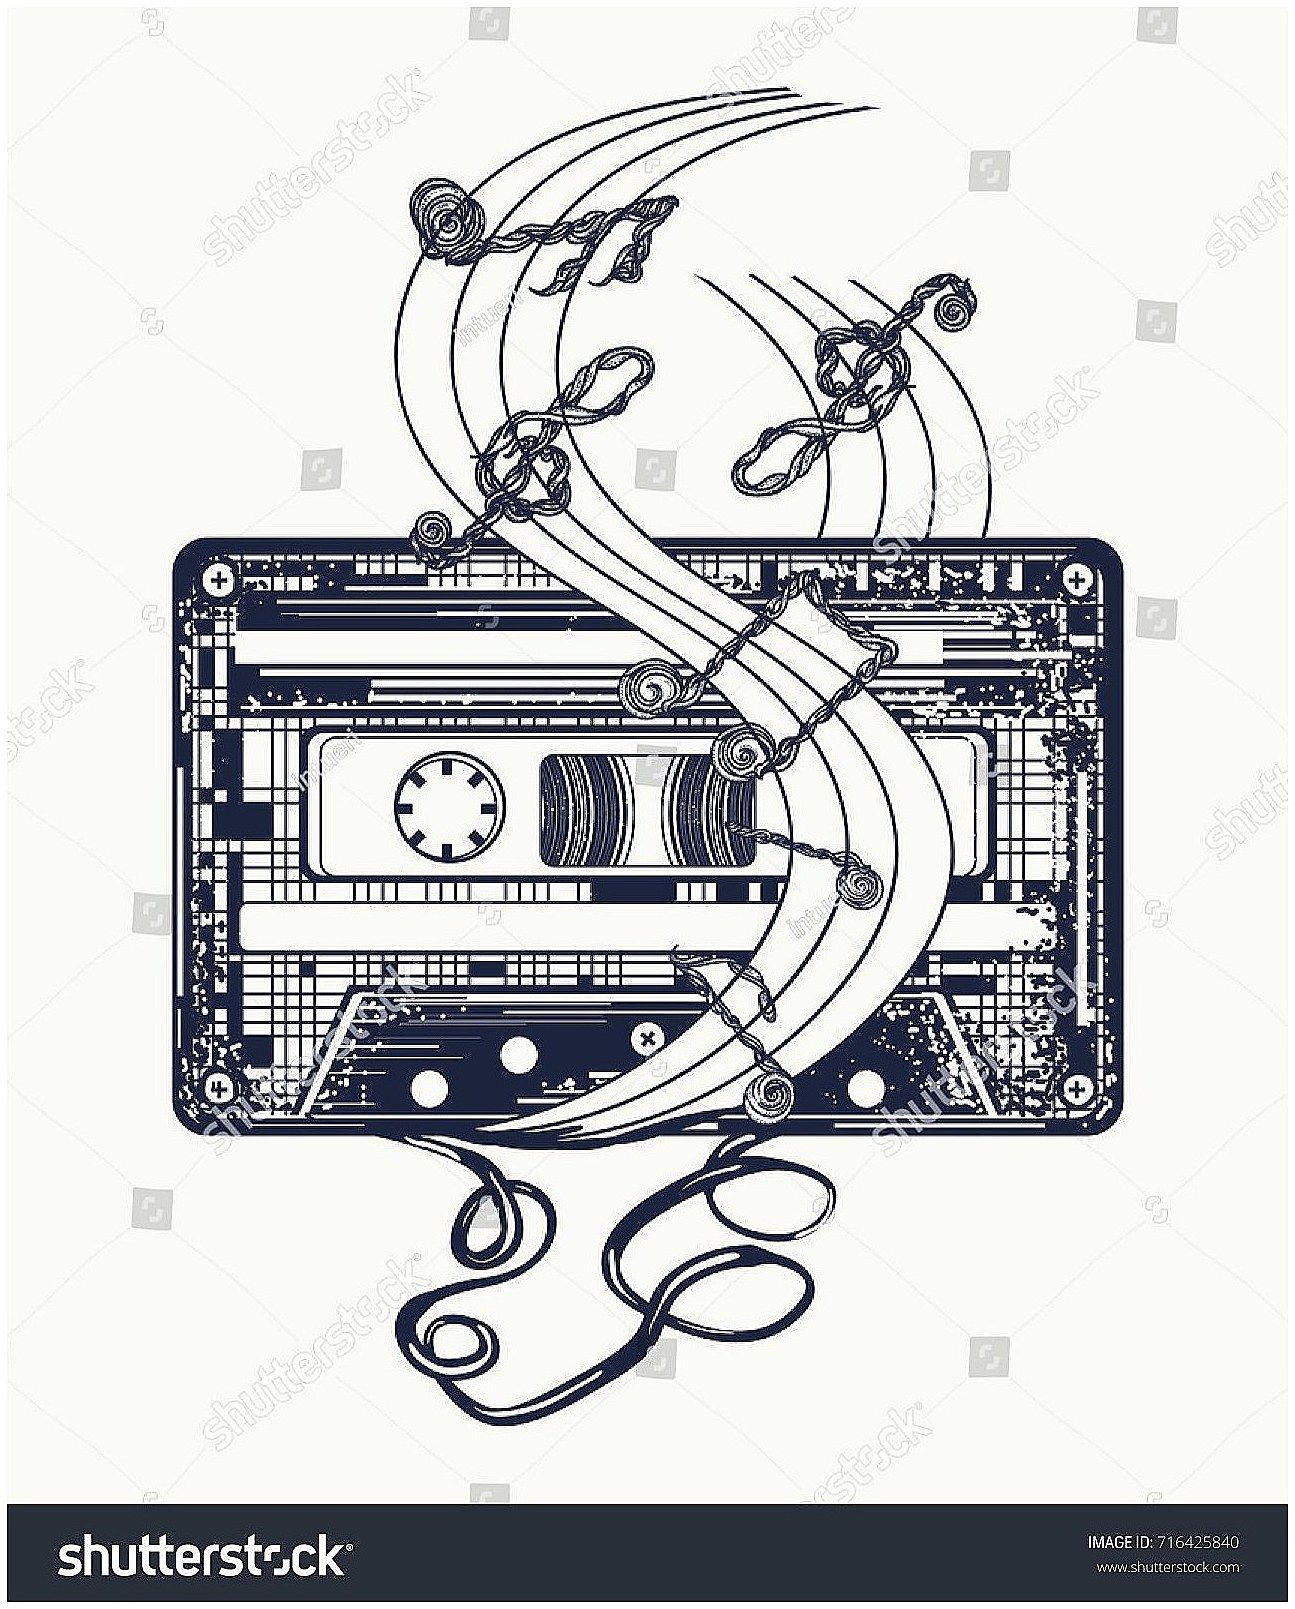 retrotattooideas #tattoo audio cassette and music notes tattoo and t-shirt  design. symbol of retro music,… | music notes tattoo, music tattoos, music  symbol tattoo  pinterest